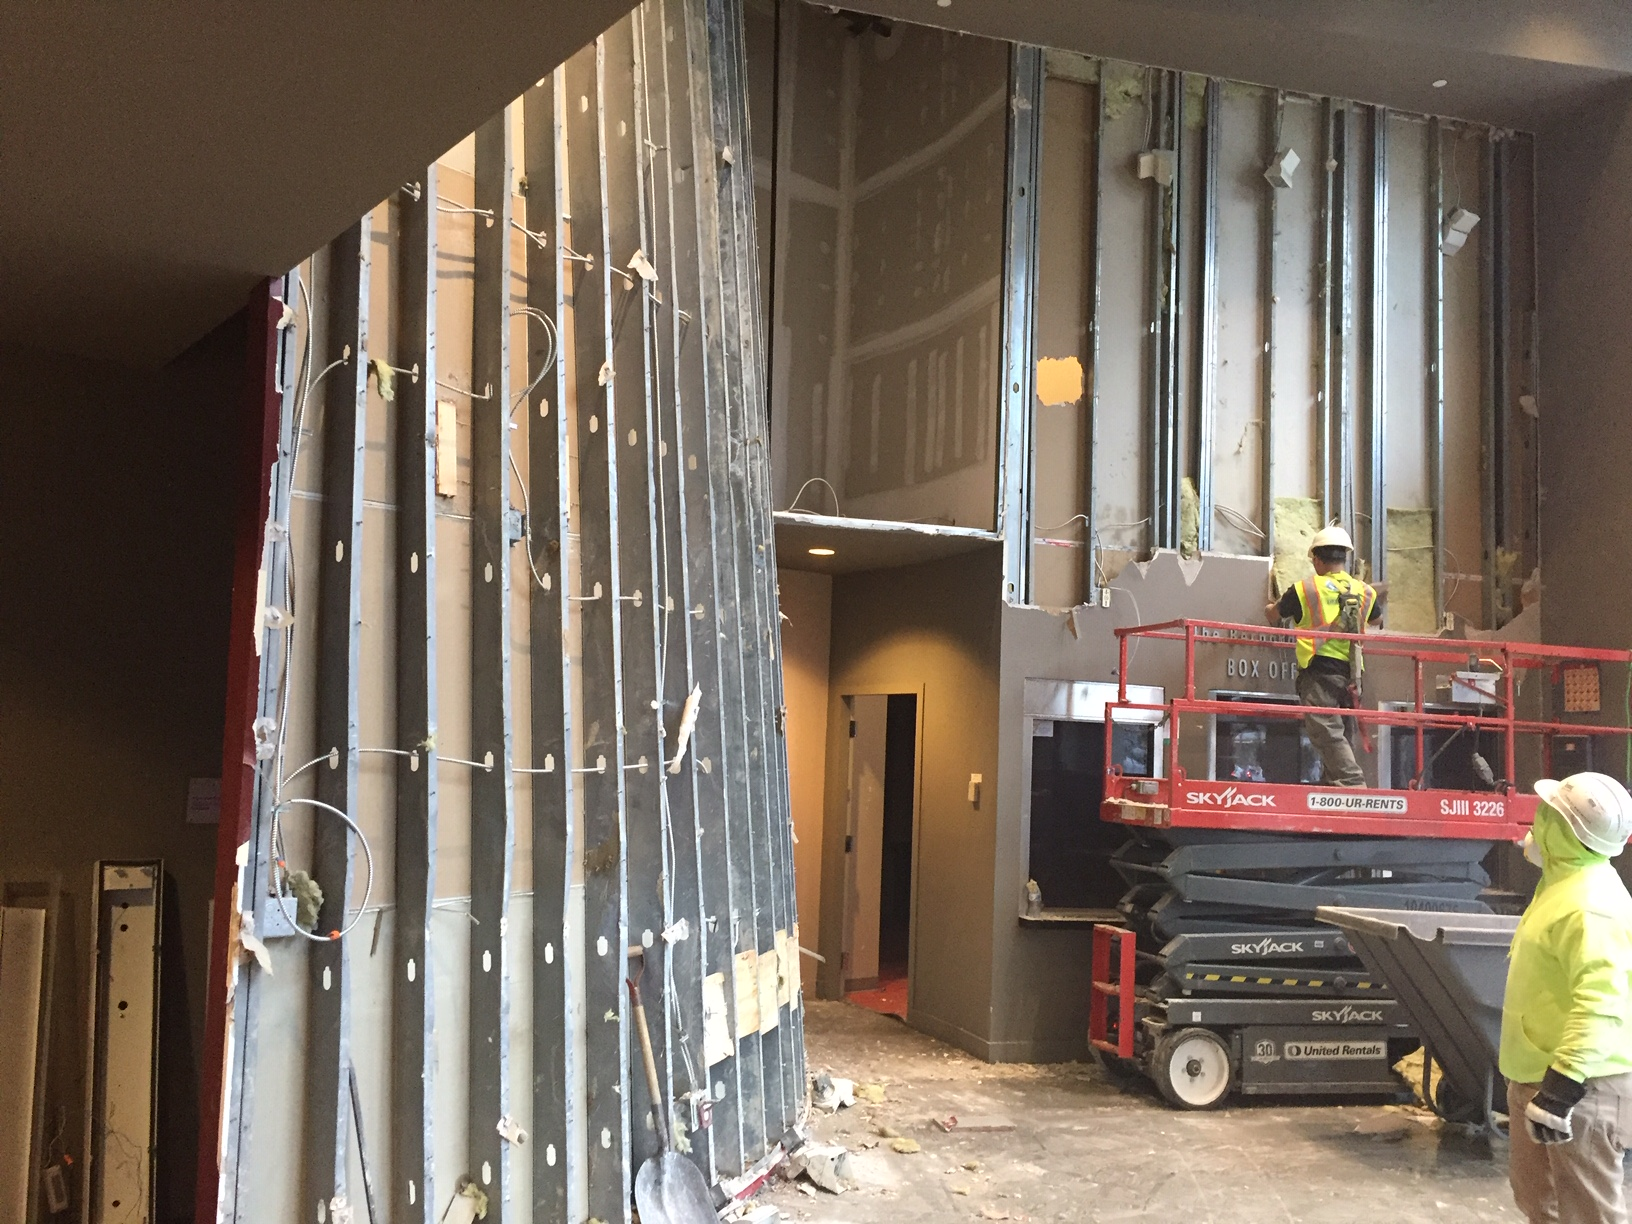 January 2019  - The front lobby is getting a full makeover, meaning the existing coat room and Box Office walls were taken down to make room for the new lobby features.